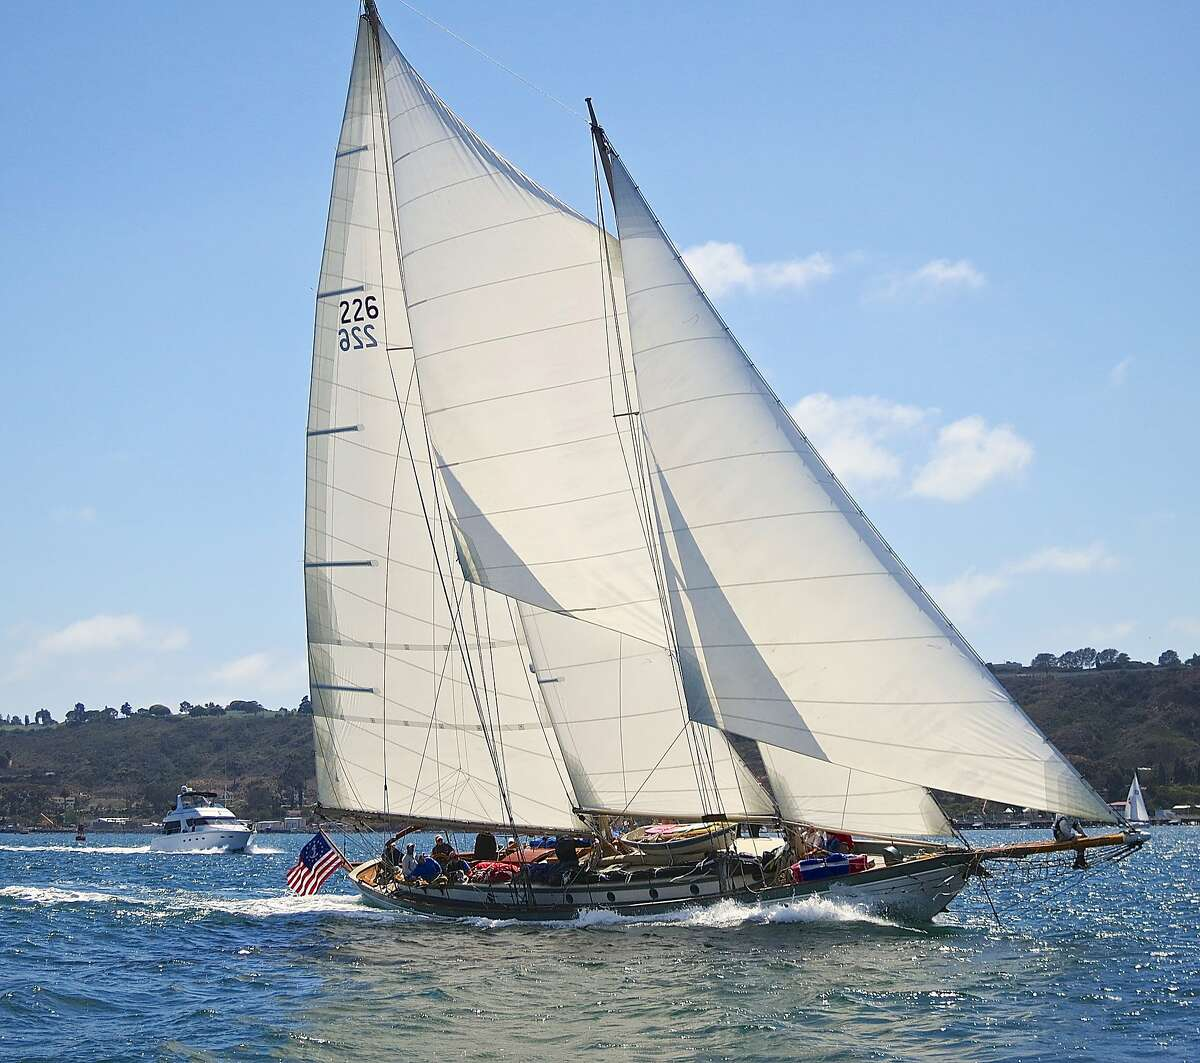 On June 13, 2015 the sailing schooner Martha will be participate in the 8th Annual Great San Francisco Schooner Race. The Martha is in the bay area for a series of races and plans to sail in the Transpacific Yacht Race that traveled from California to Hawaii in July.